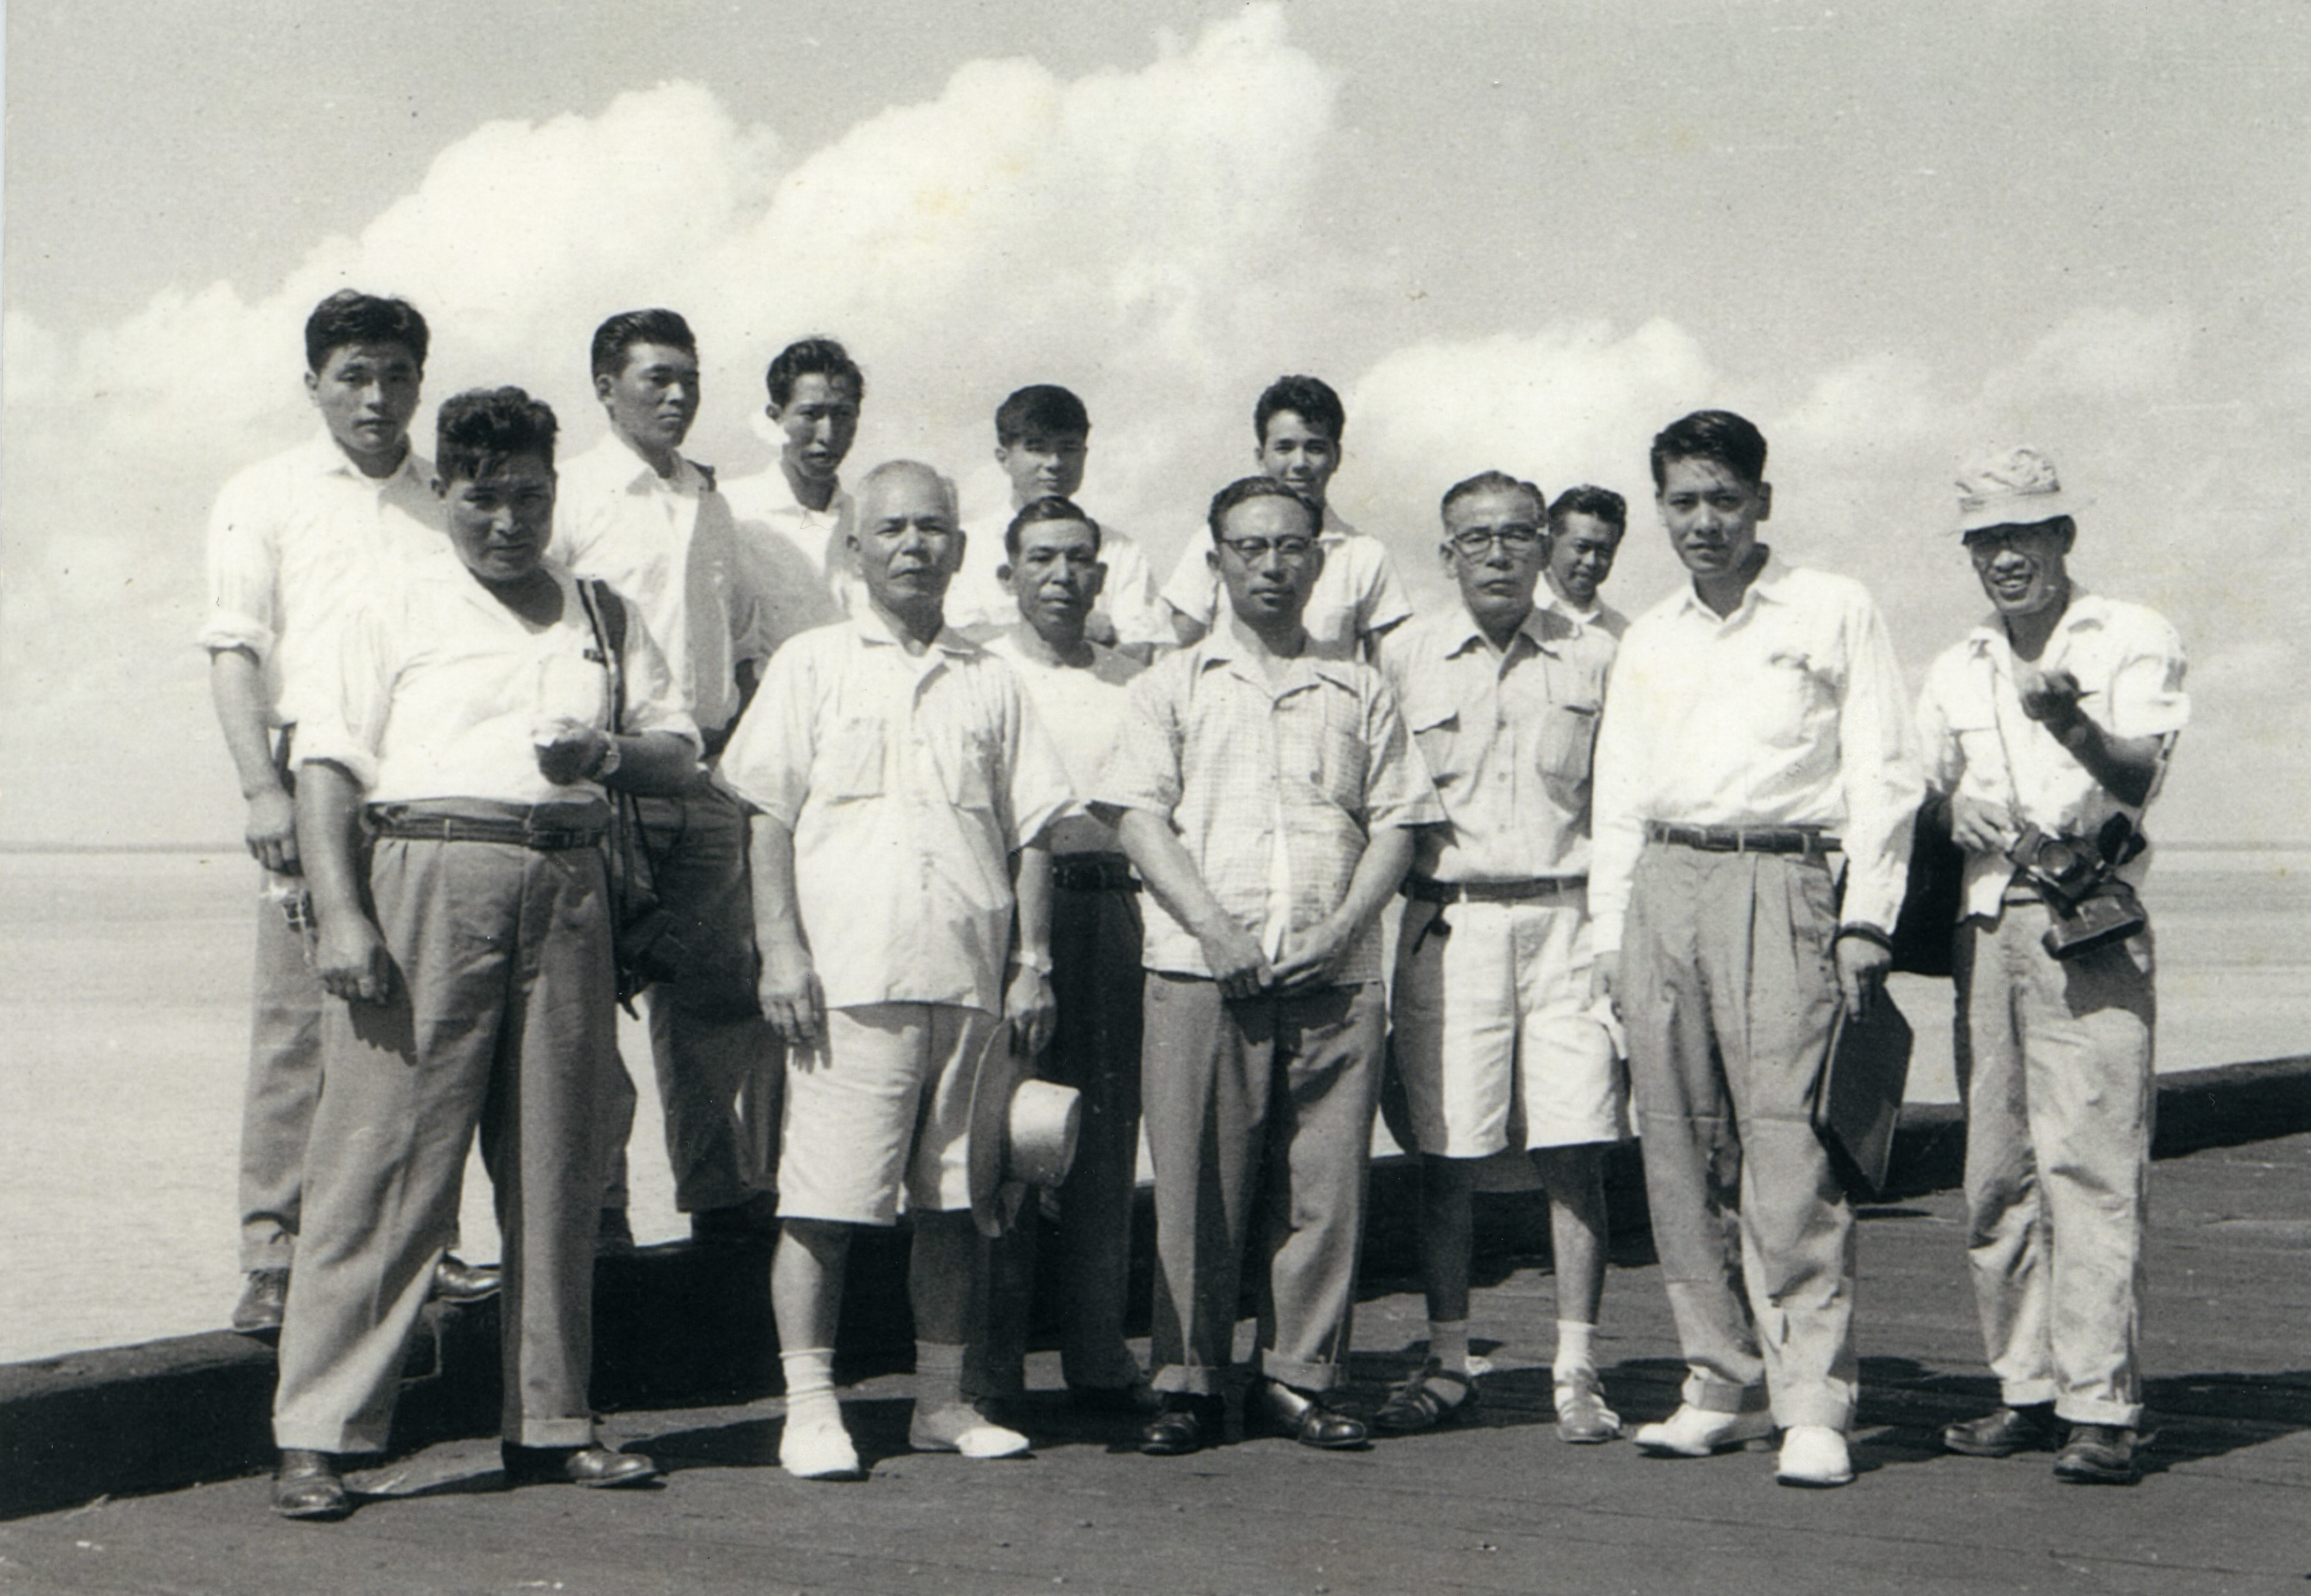 A group of employees of the Fujita Salvage Company in 1960.